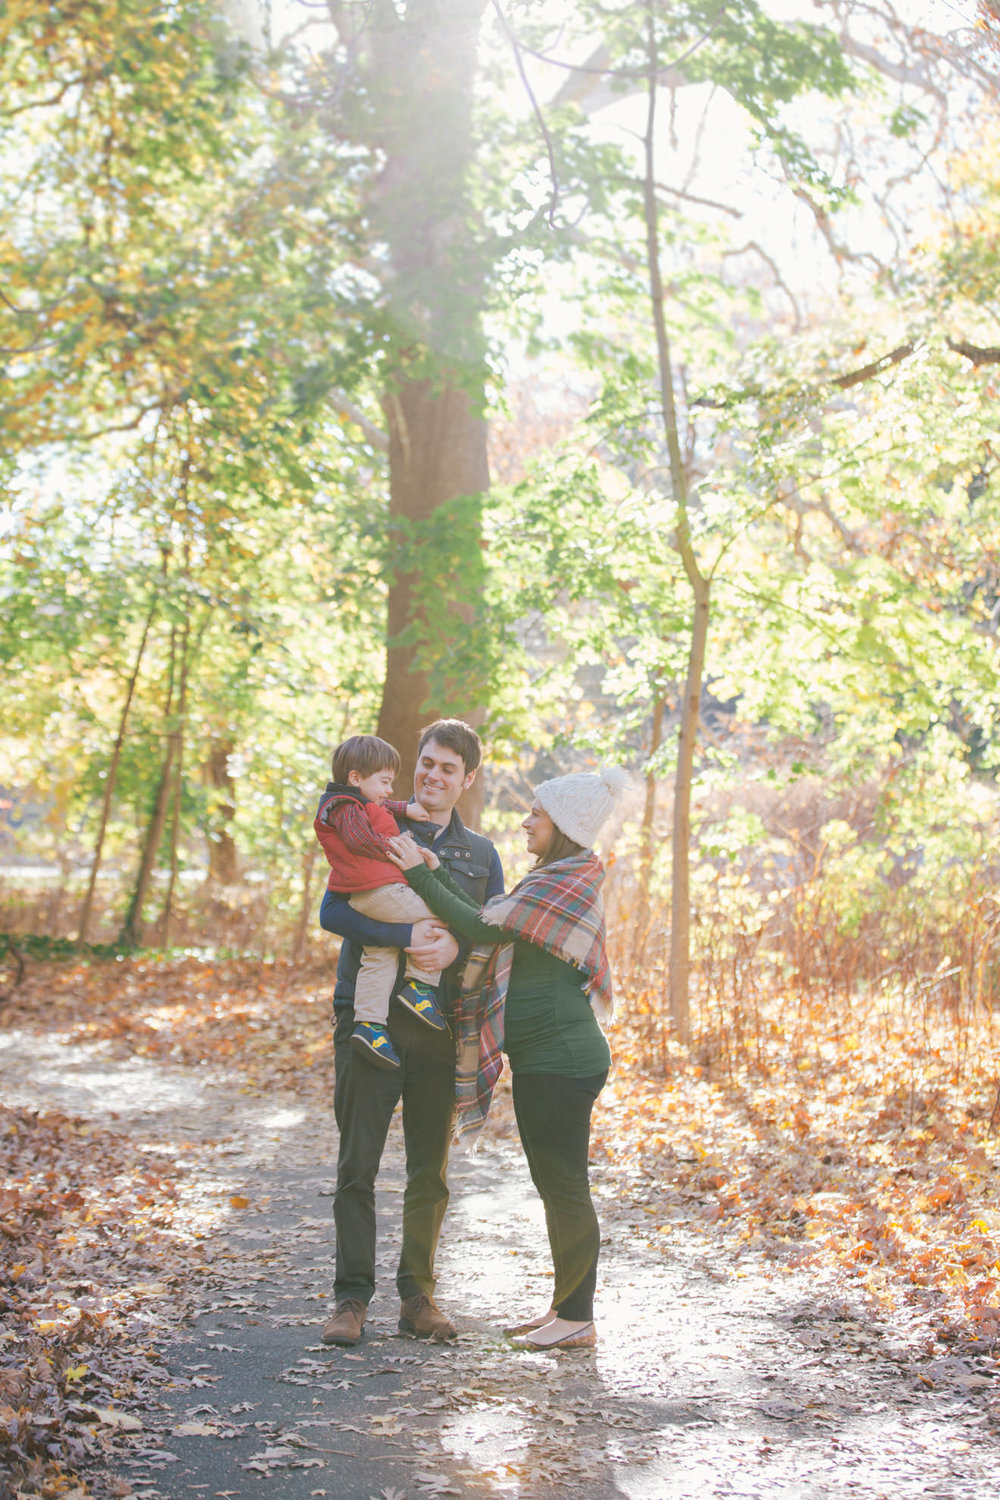 scarsdale-family-mini-session-mccarthy-2.jpg